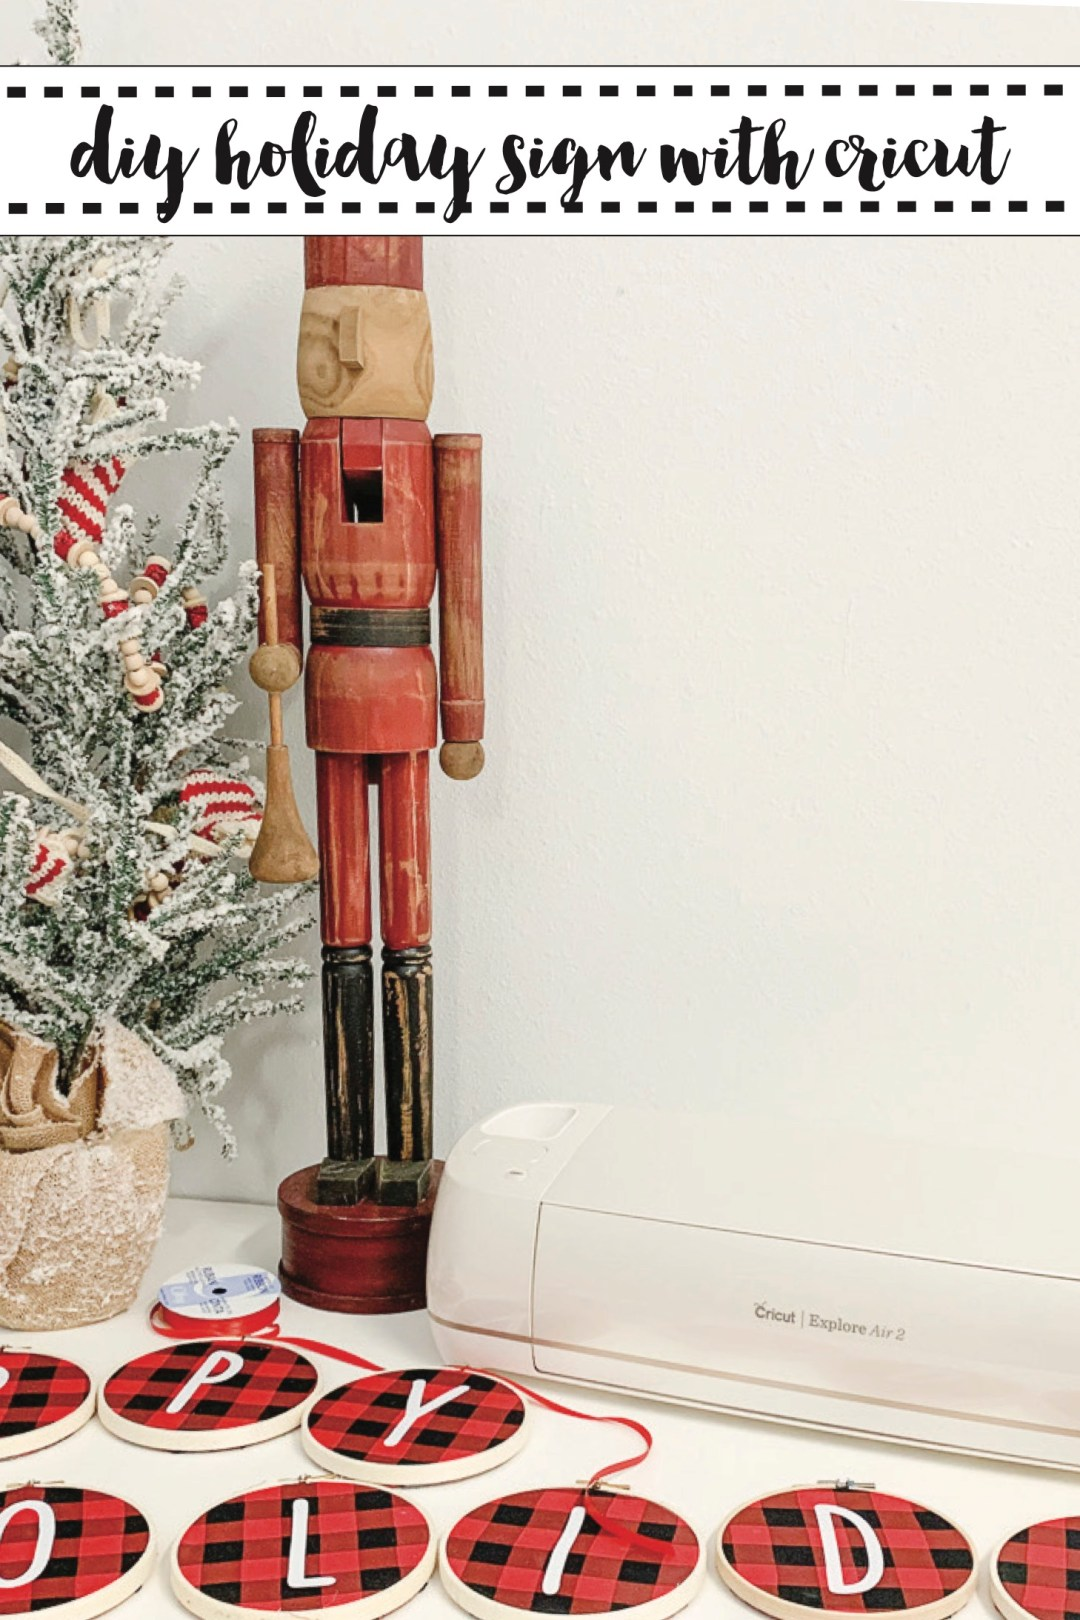 Cricut Explore Air 2 Nutcracker Flocked Christmas Tree